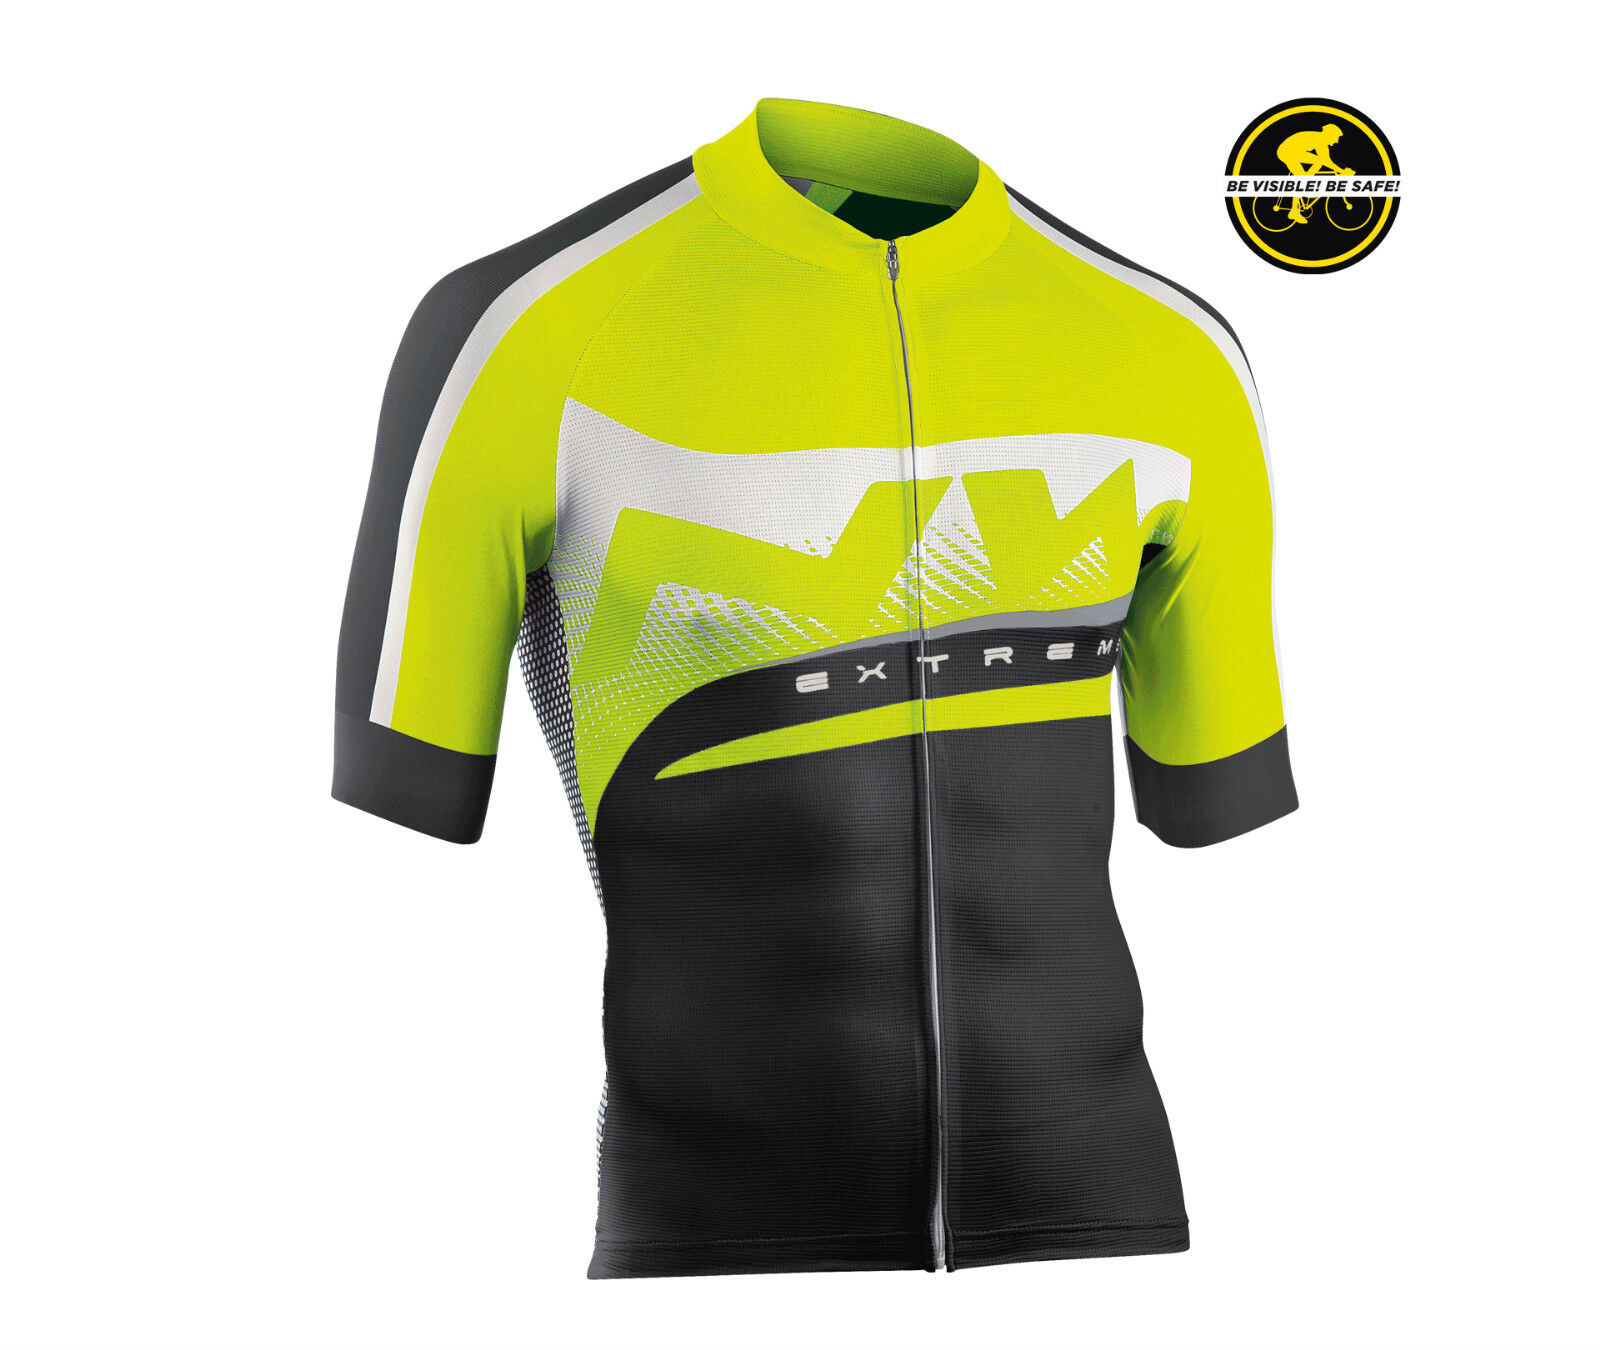 Maillot Manches Courtes NORTHWAVE EXTREME GRAPHIQUE black   yellow JERSEY EXTR